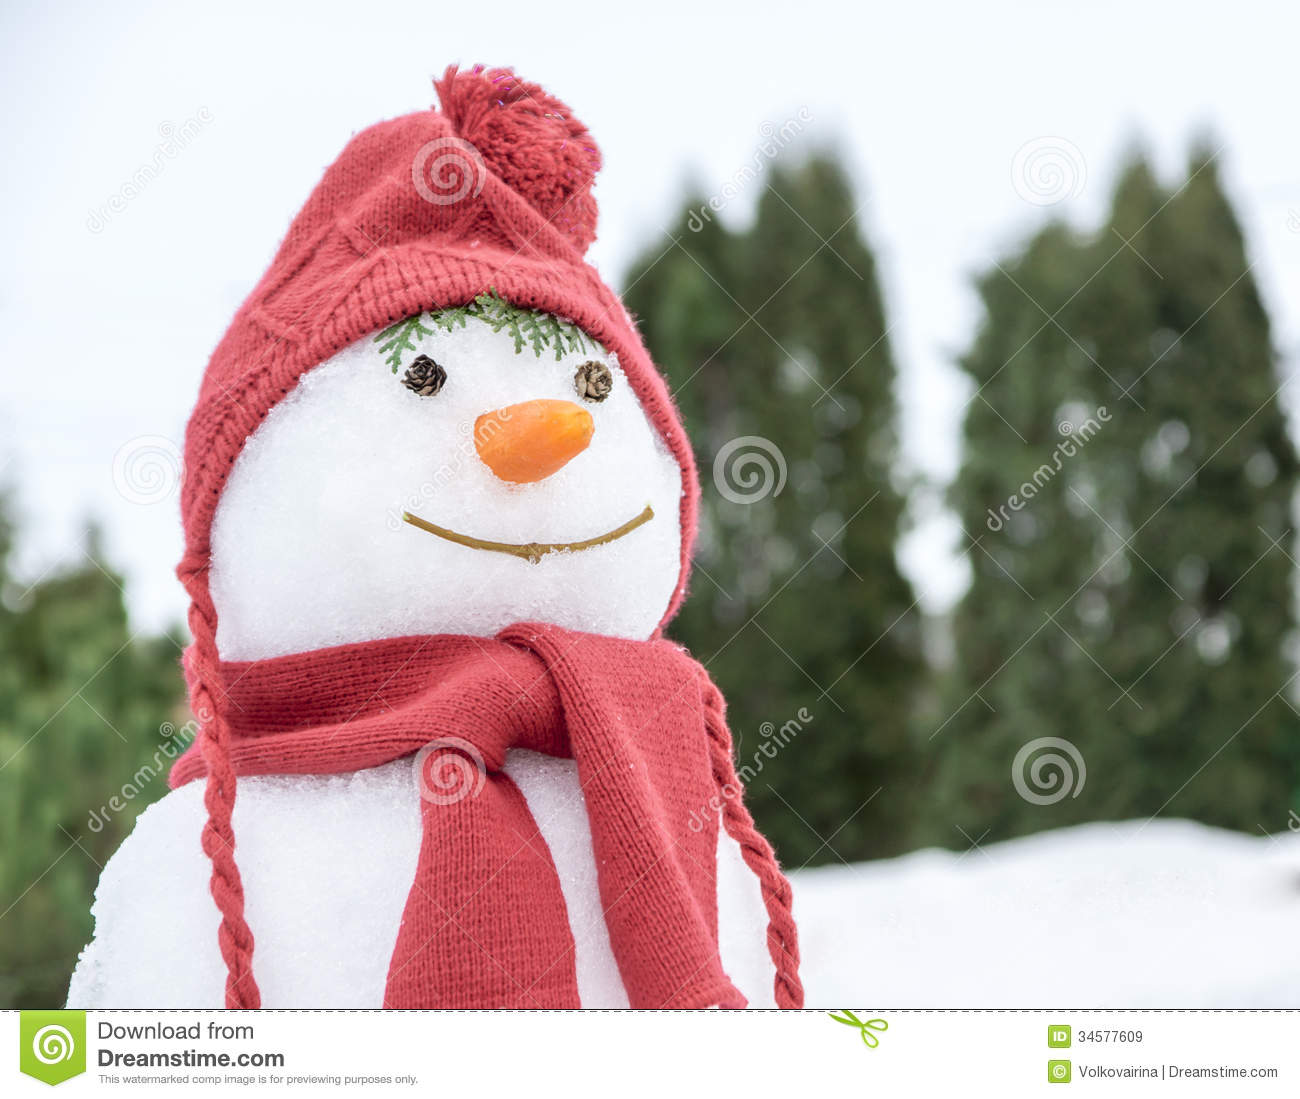 Snowman With A Pink Hat Stock Image. Image Of Seasonal